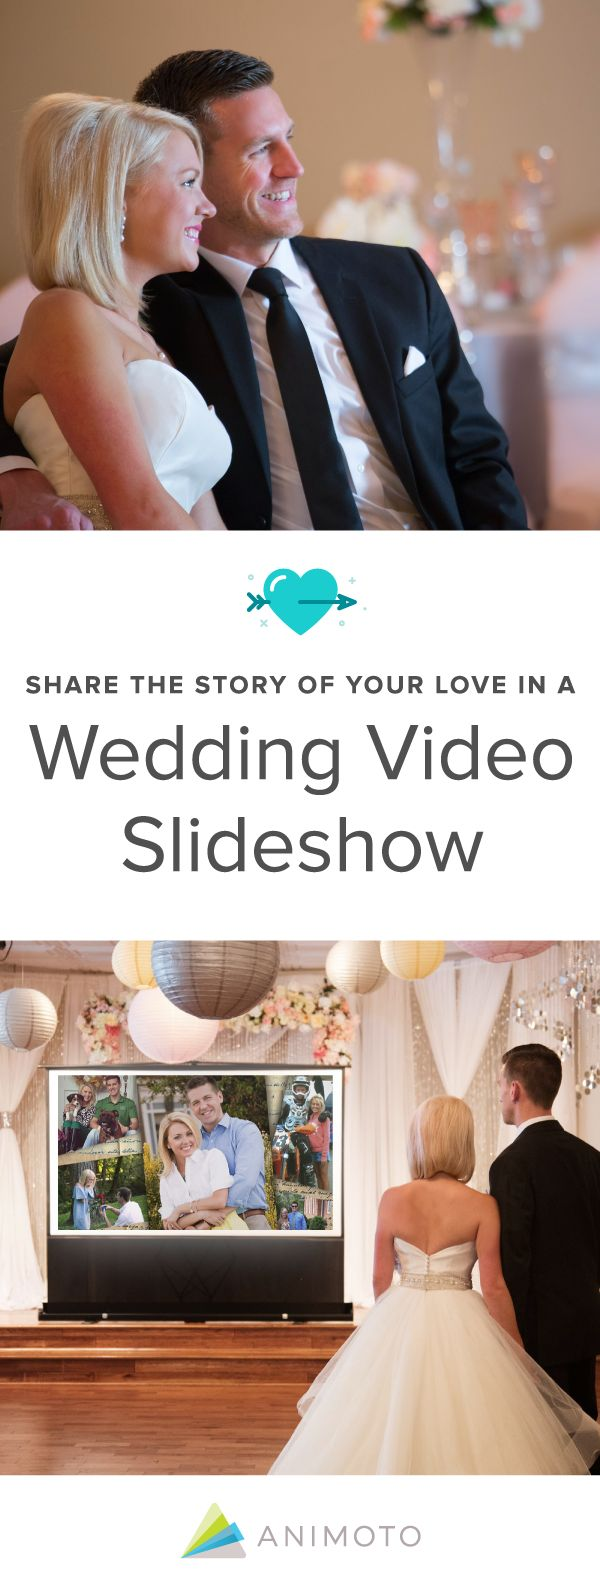 Share the story of your love in a wedding video slideshow.